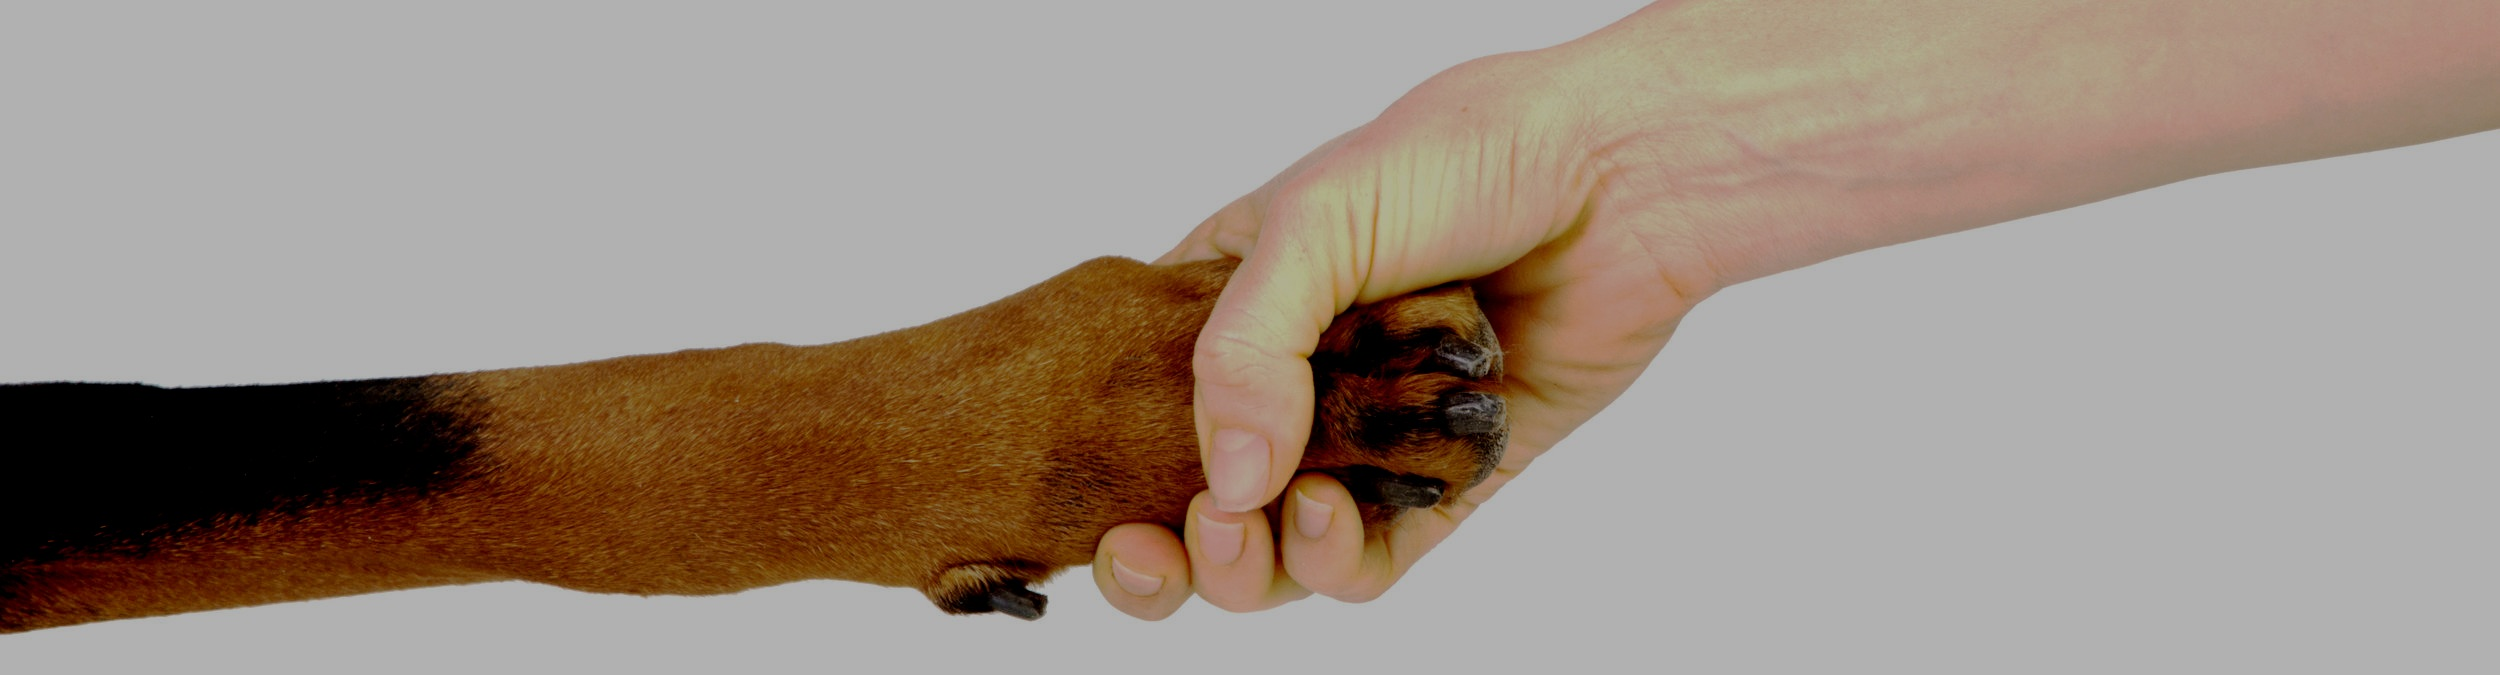 Gift of Stock - You can transfer stock directly through your broker to the account of Tender Loving Canines Assistance Dogs, Inc. (Tax ID: 33-0809688)Wedbush Securities Account # 4611-3332 (DTC #0103)Our representative at Wedbush Securities is Werner Iseli Email: werner.iseli@wedbush.com Telephone: (800) 234-0480